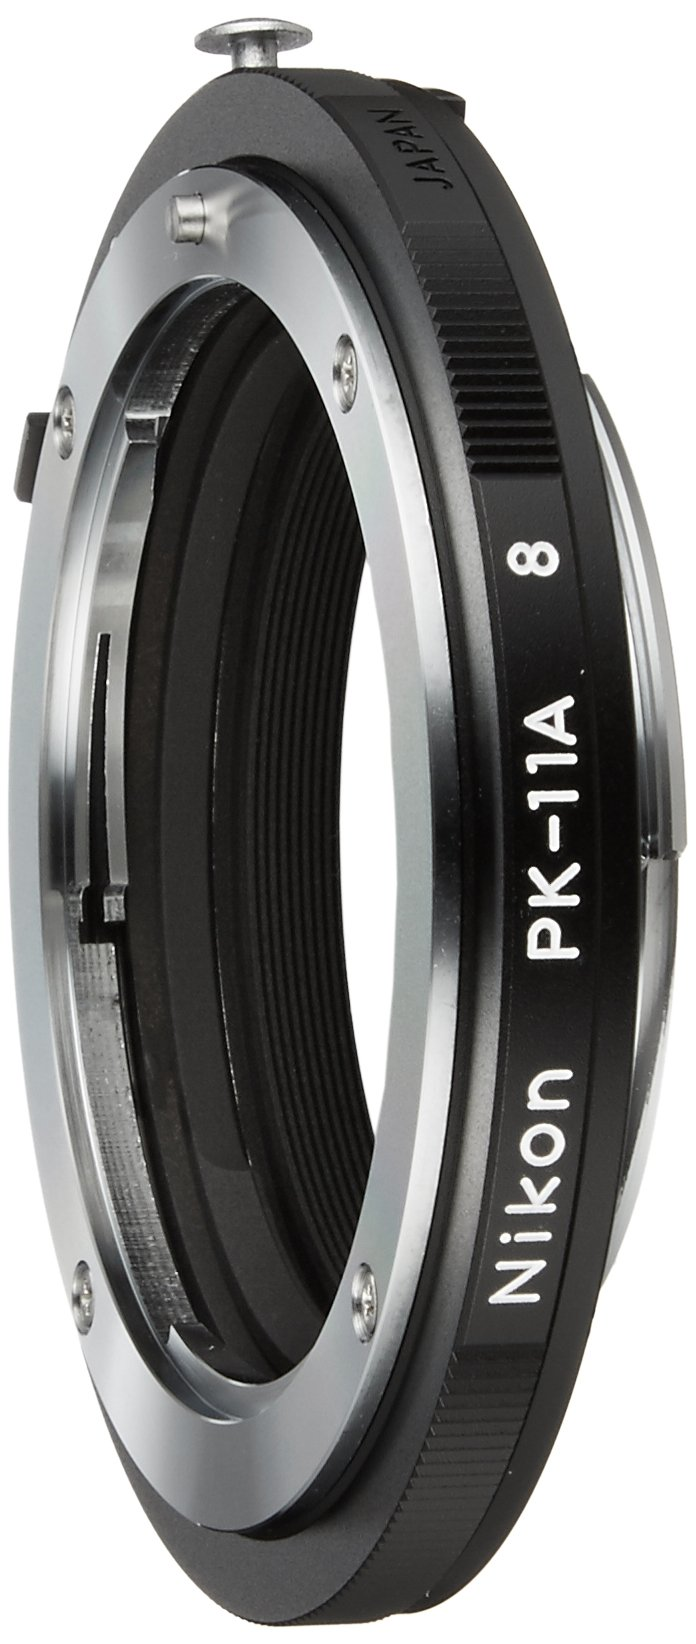 8mm AI Extension Tube PK-11A, 2656,